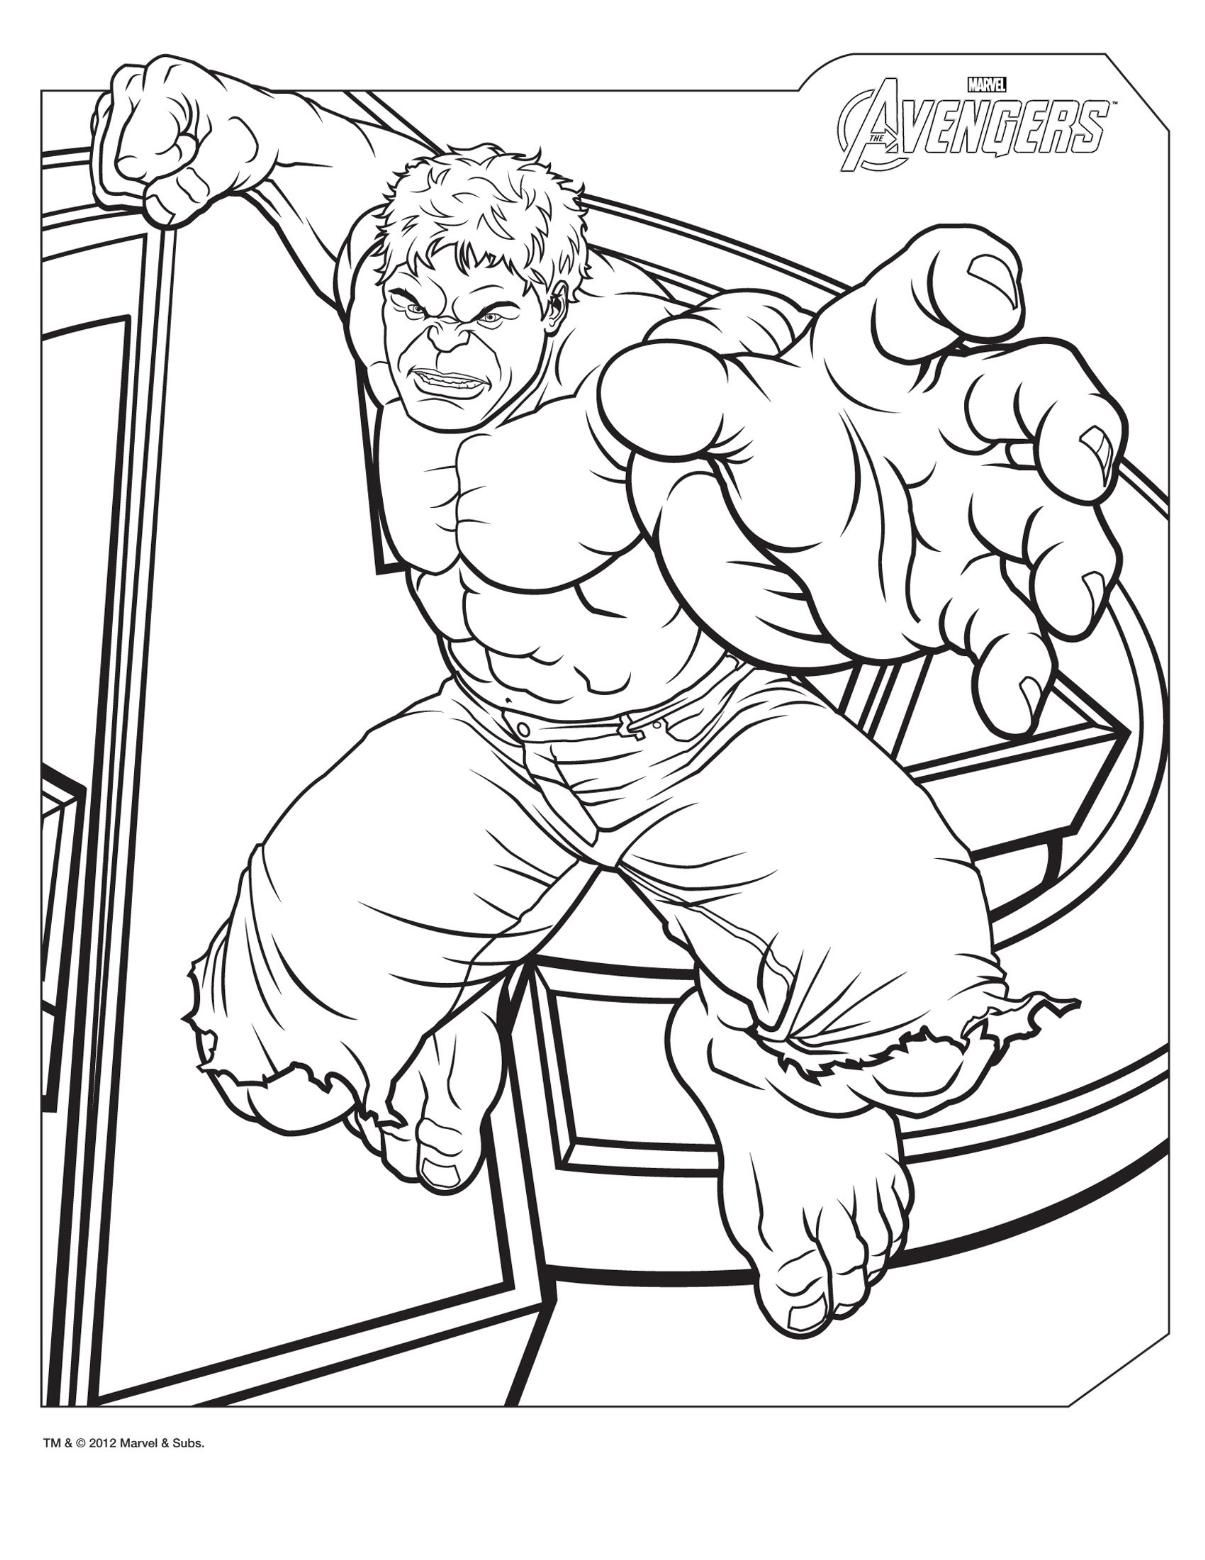 incredible hulk coloring pages Free Printable Hulk Coloring Pages For Kids | coloring pages  incredible hulk coloring pages